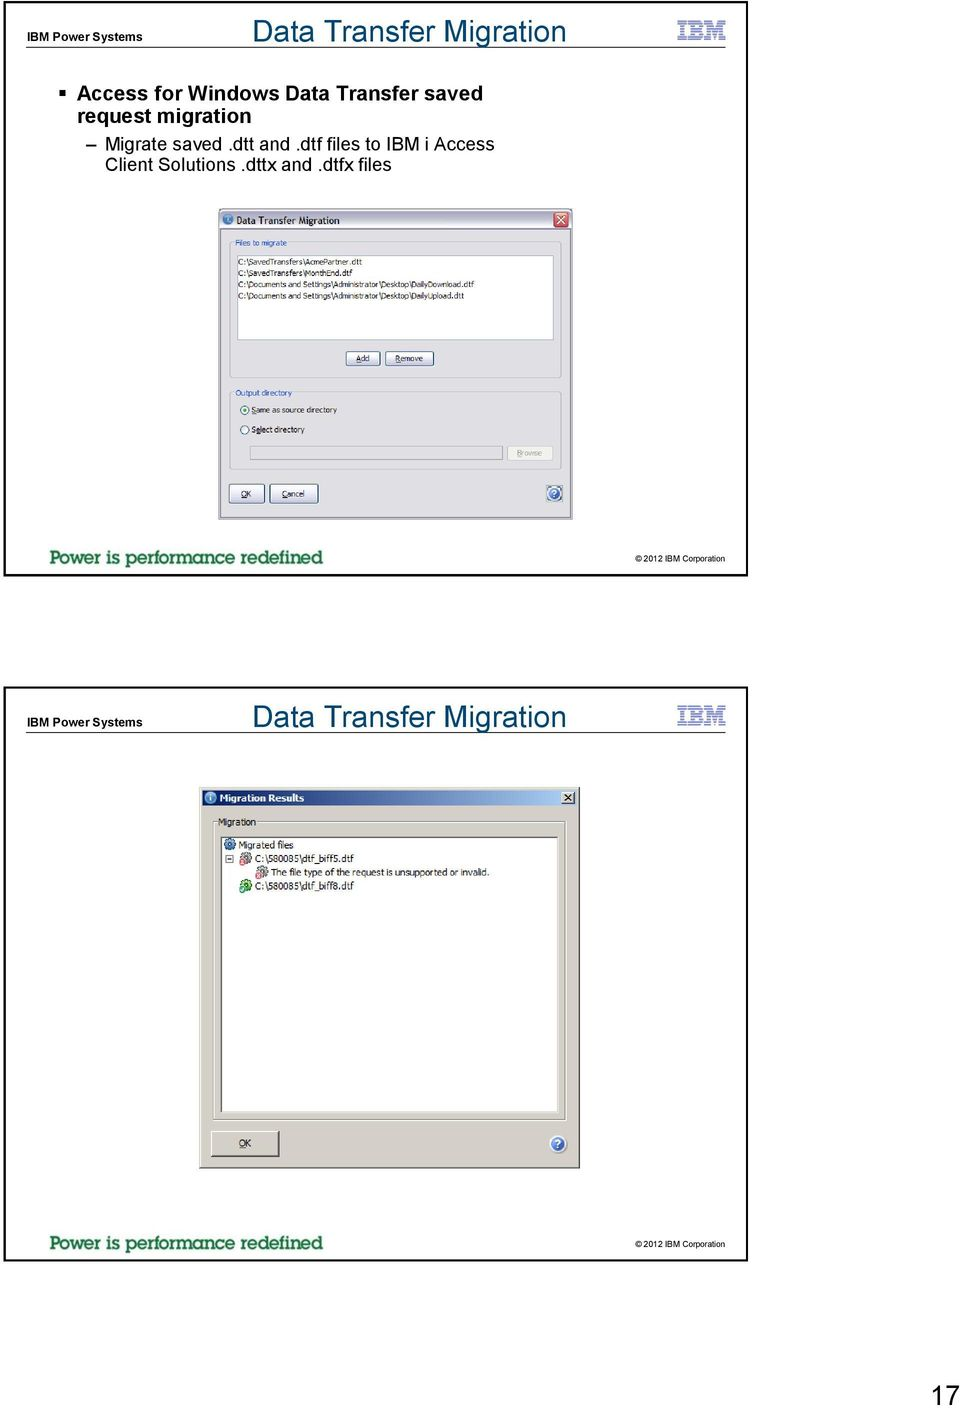 Ibm I Access Client Solutions Data Transfer